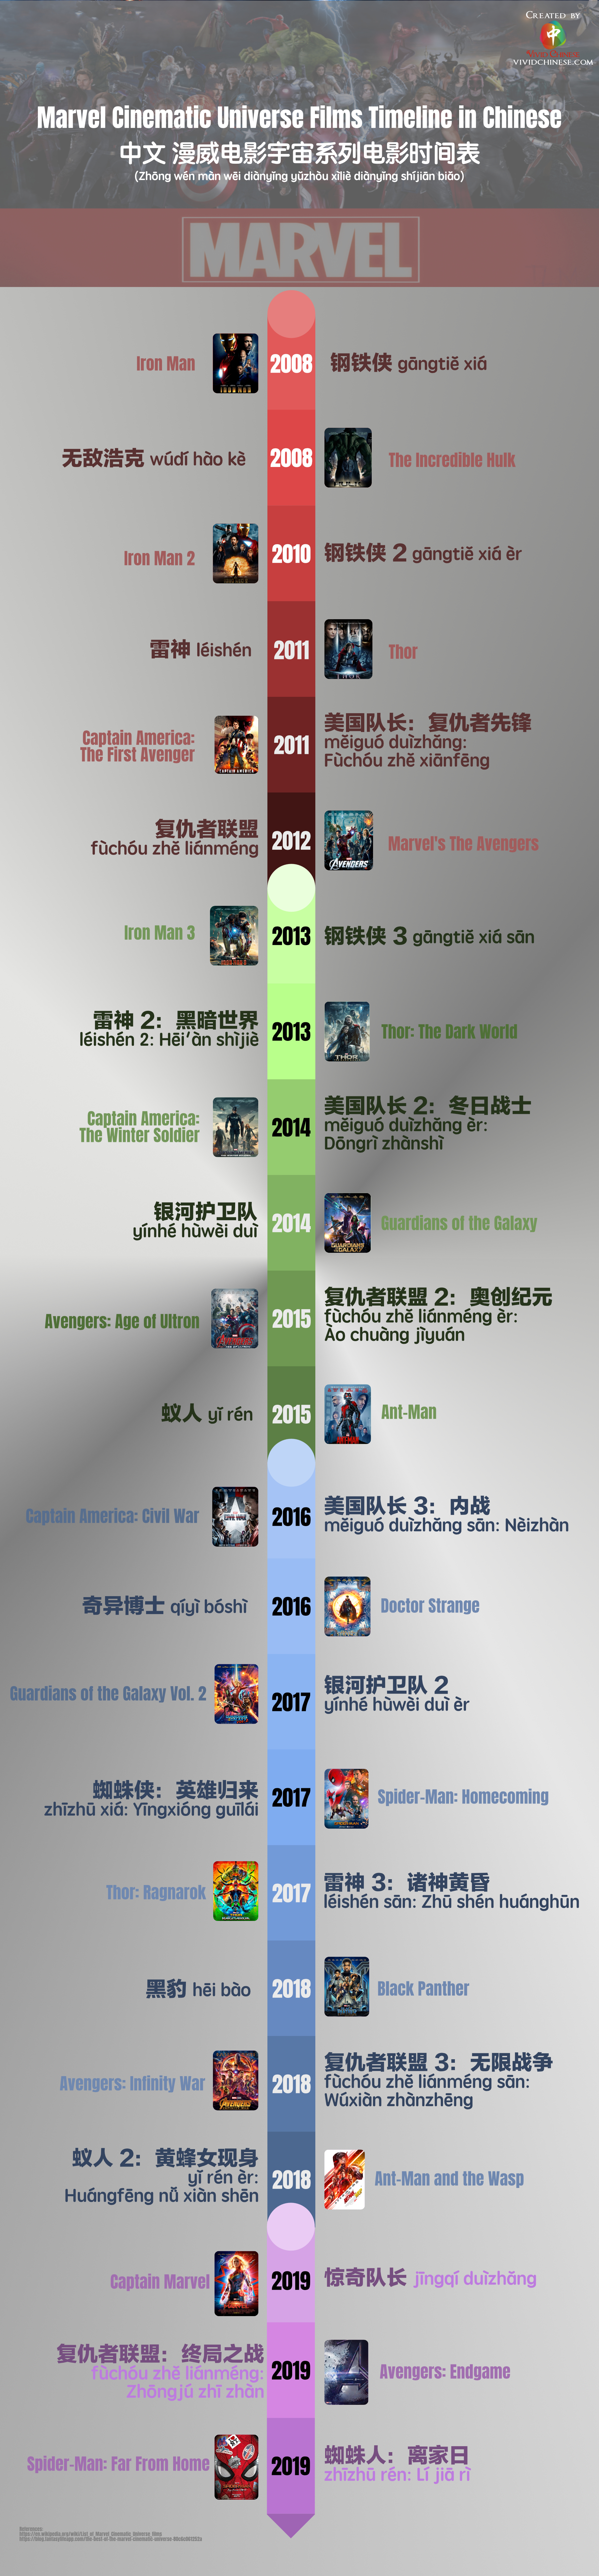 Cinematic Marvel Universe Films Timeline in Chinese Infographic